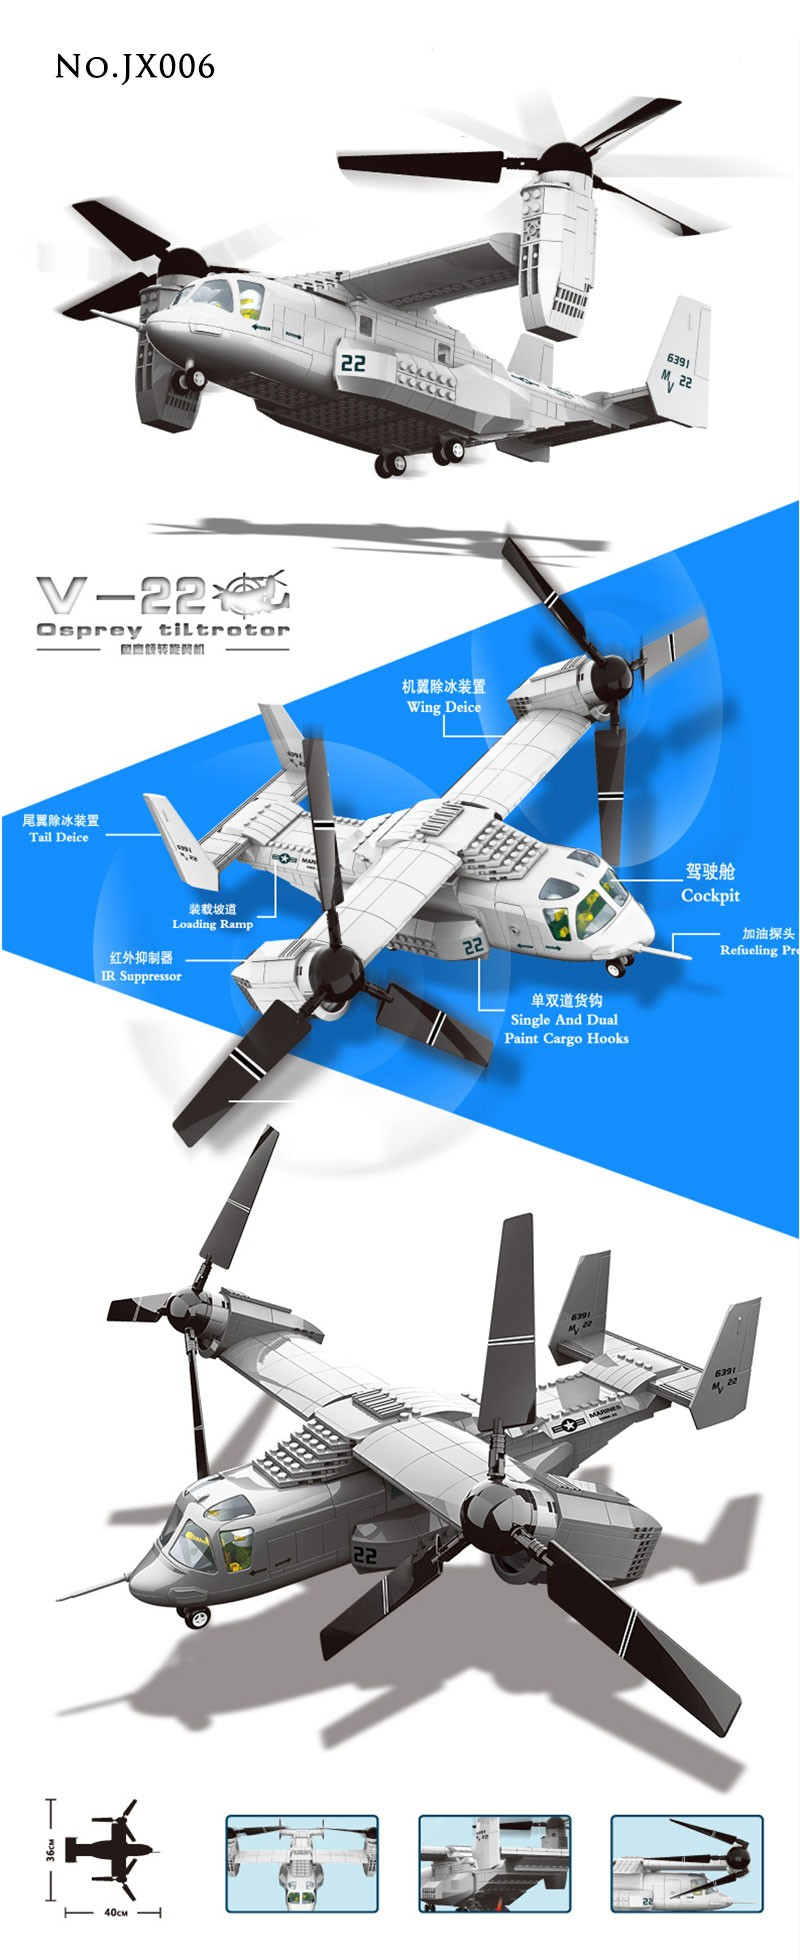 Wange Building Blocks Military F15 Fighter J-15 V-22 Osprey Tiltrotor Aircraft Helicopter Model Building Kits Toys For Children 6